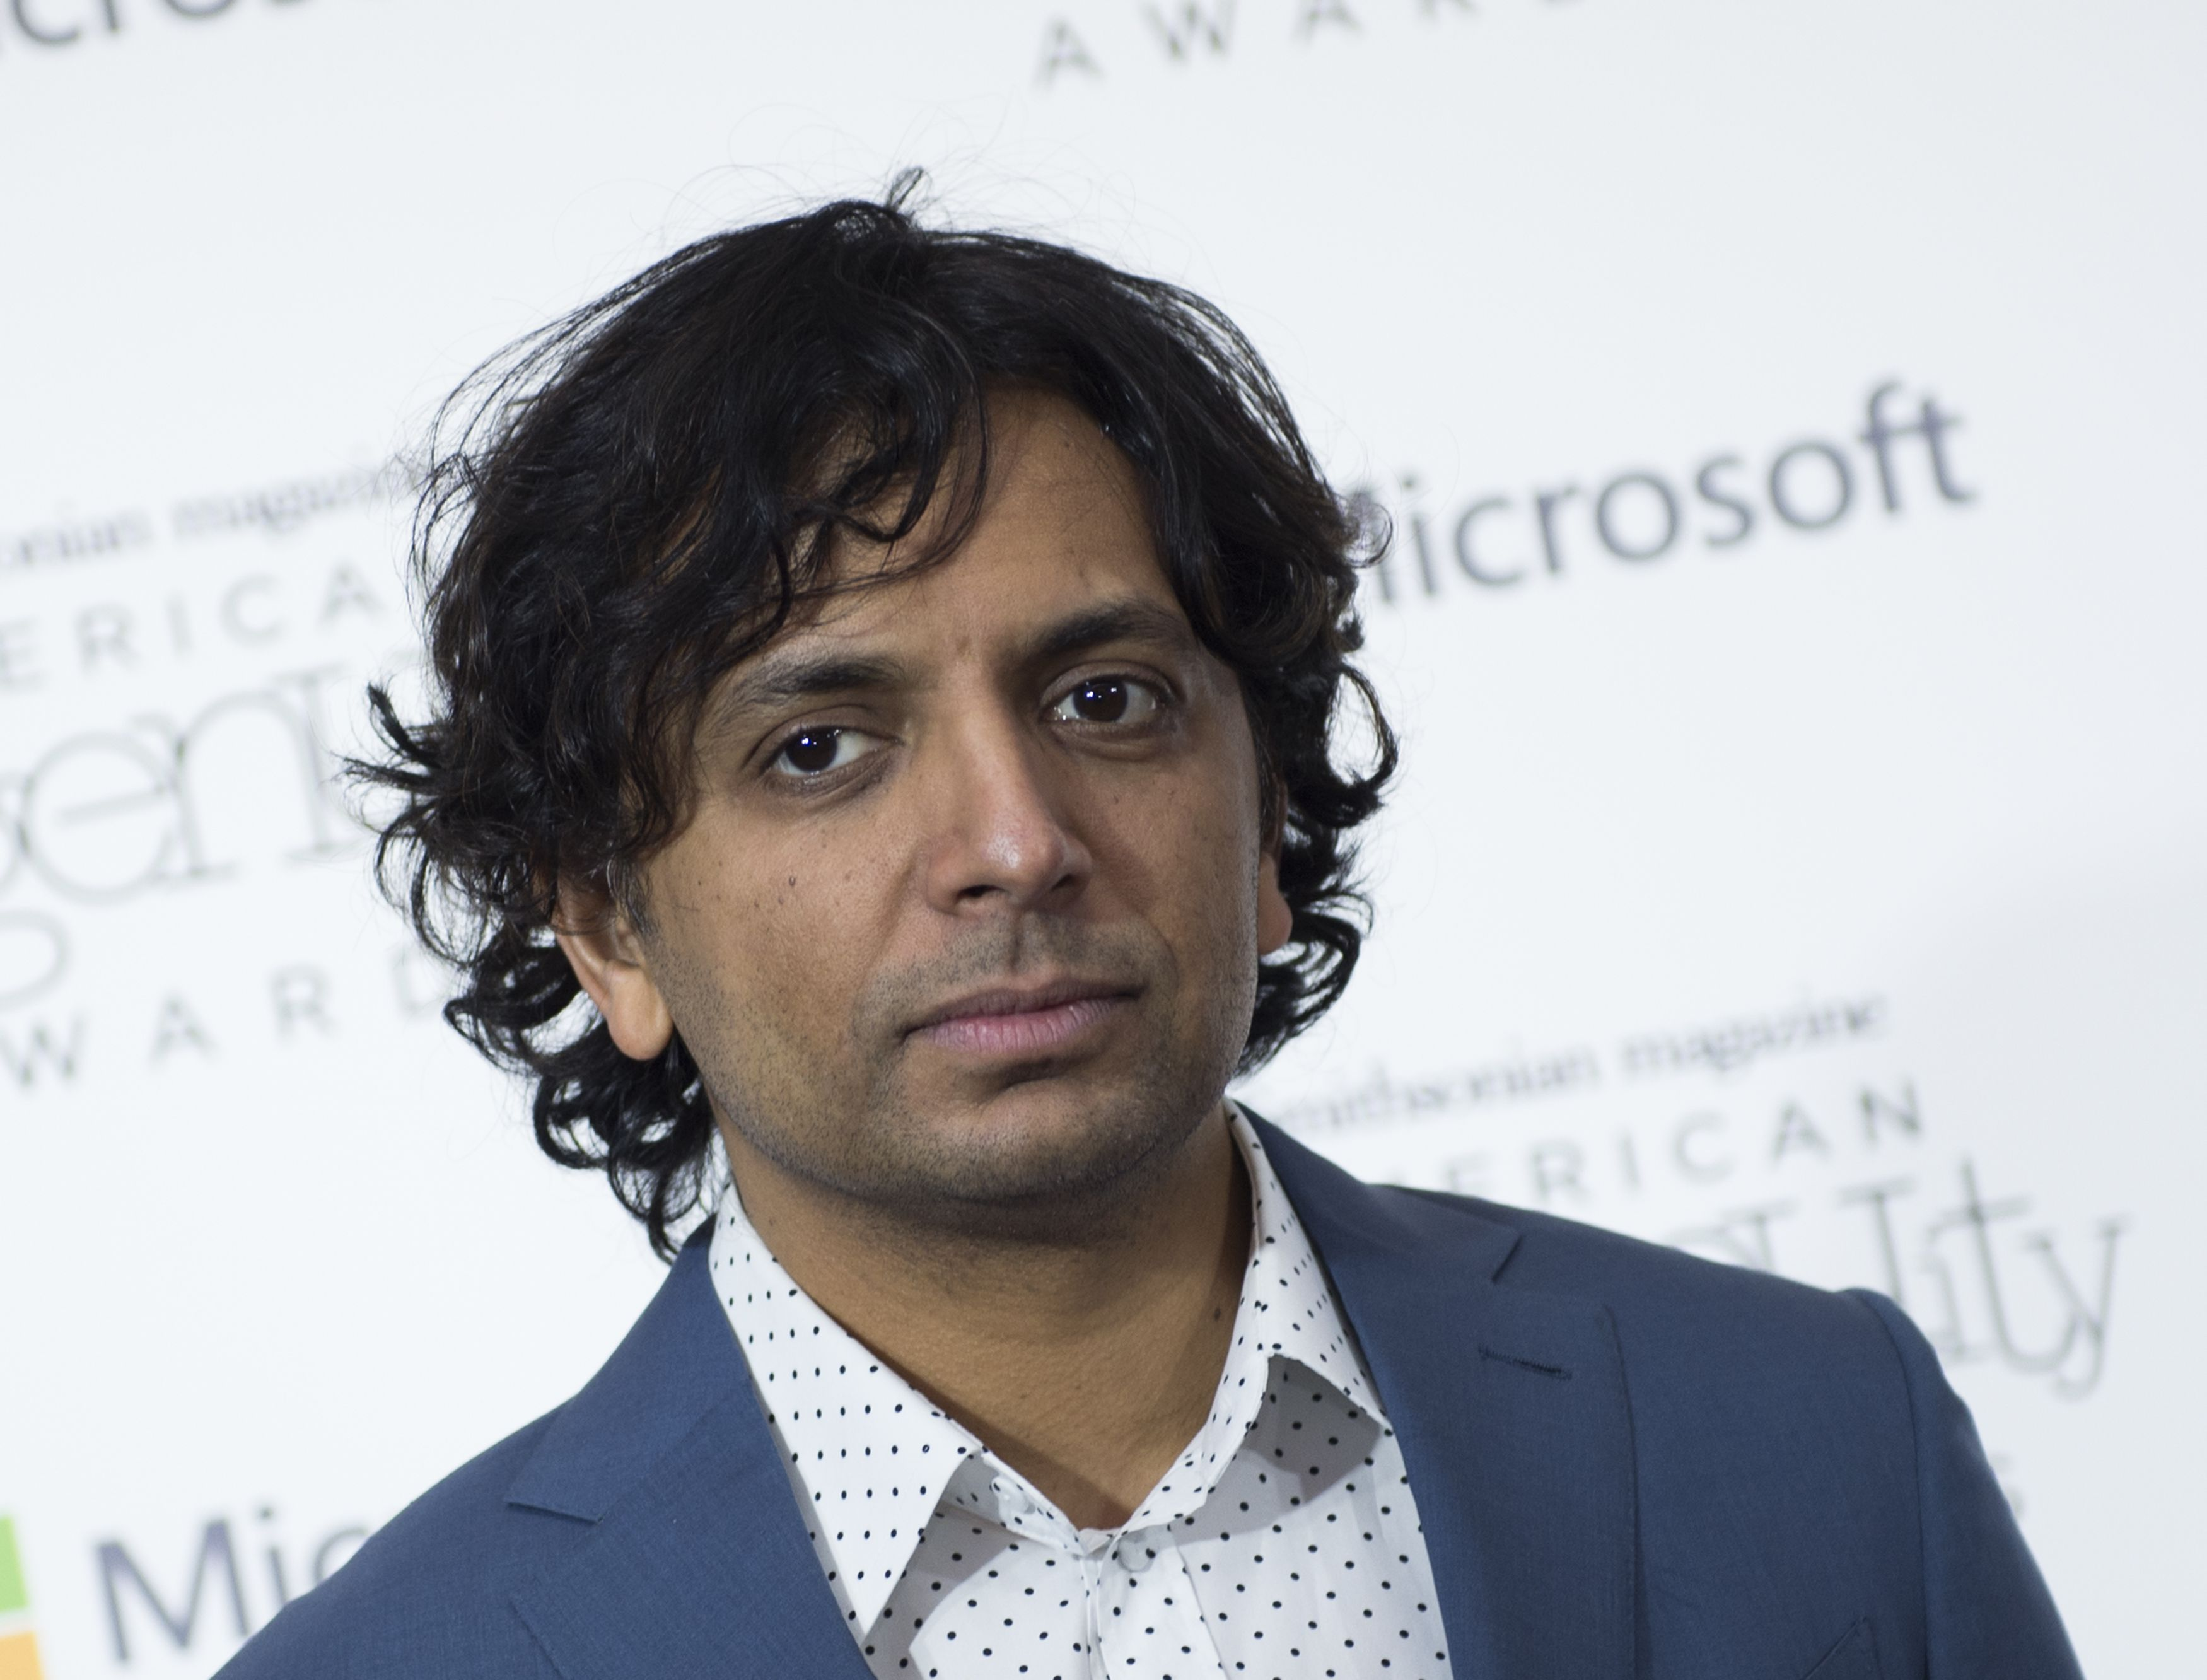 Apple adds an m night shyamalan thriller to its roster of